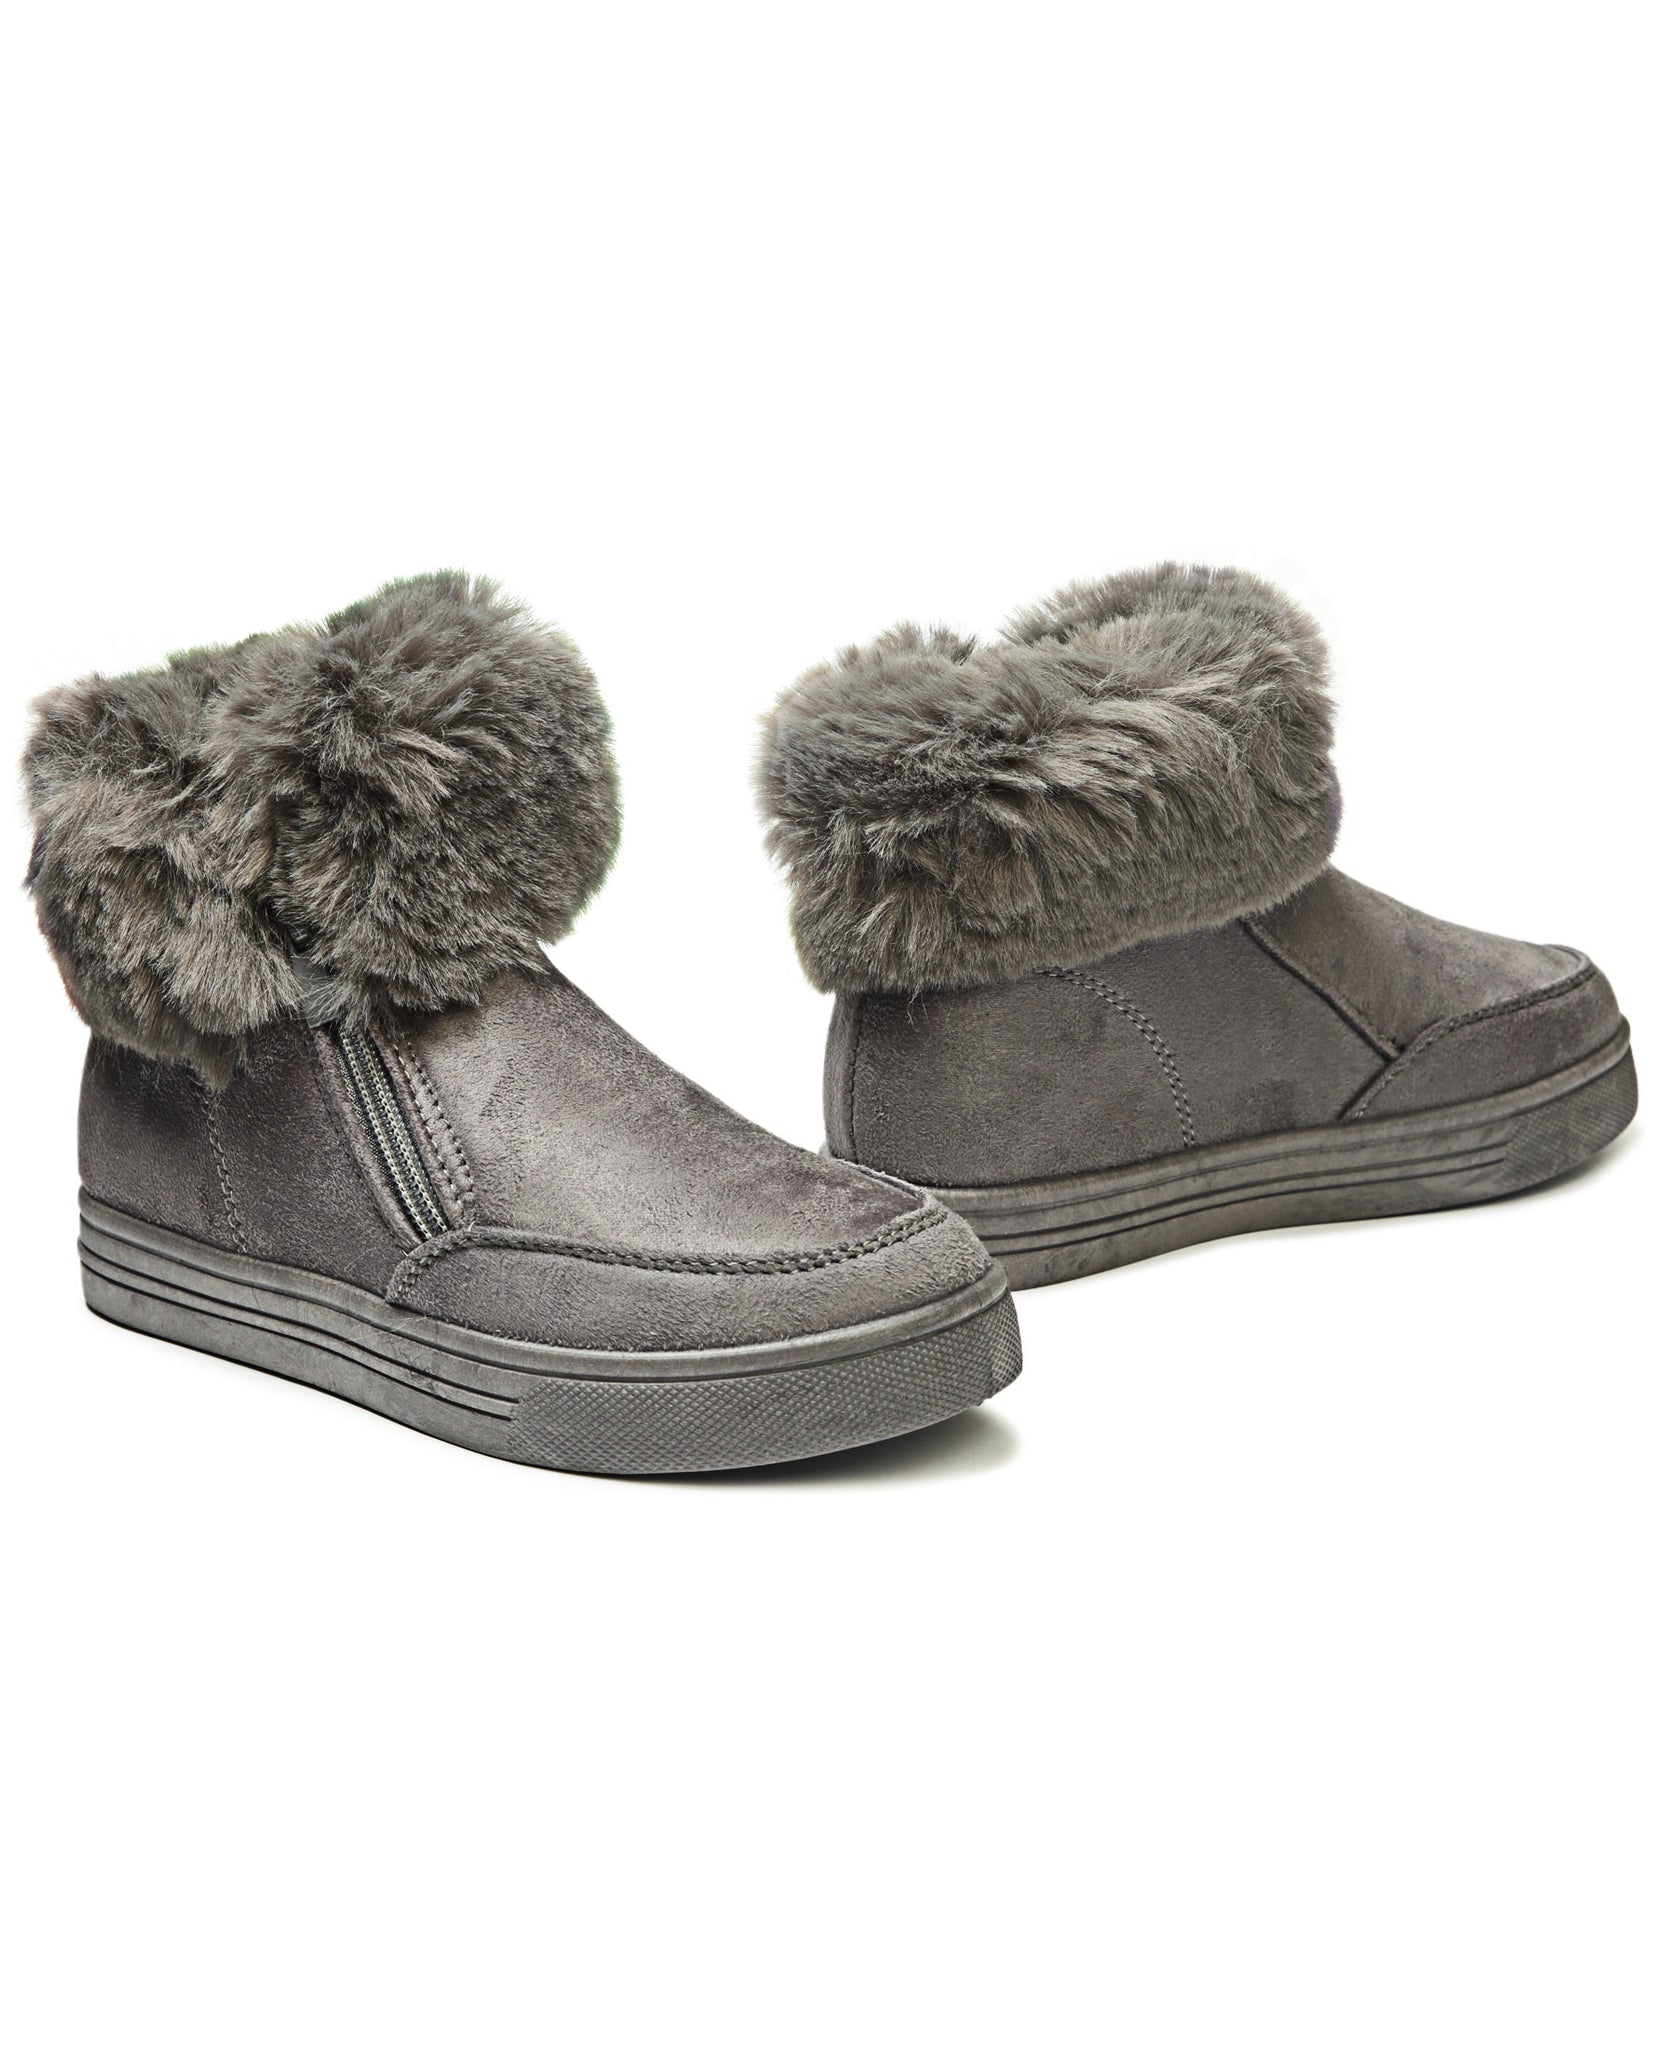 Girls Fluff Sneakers - Grey